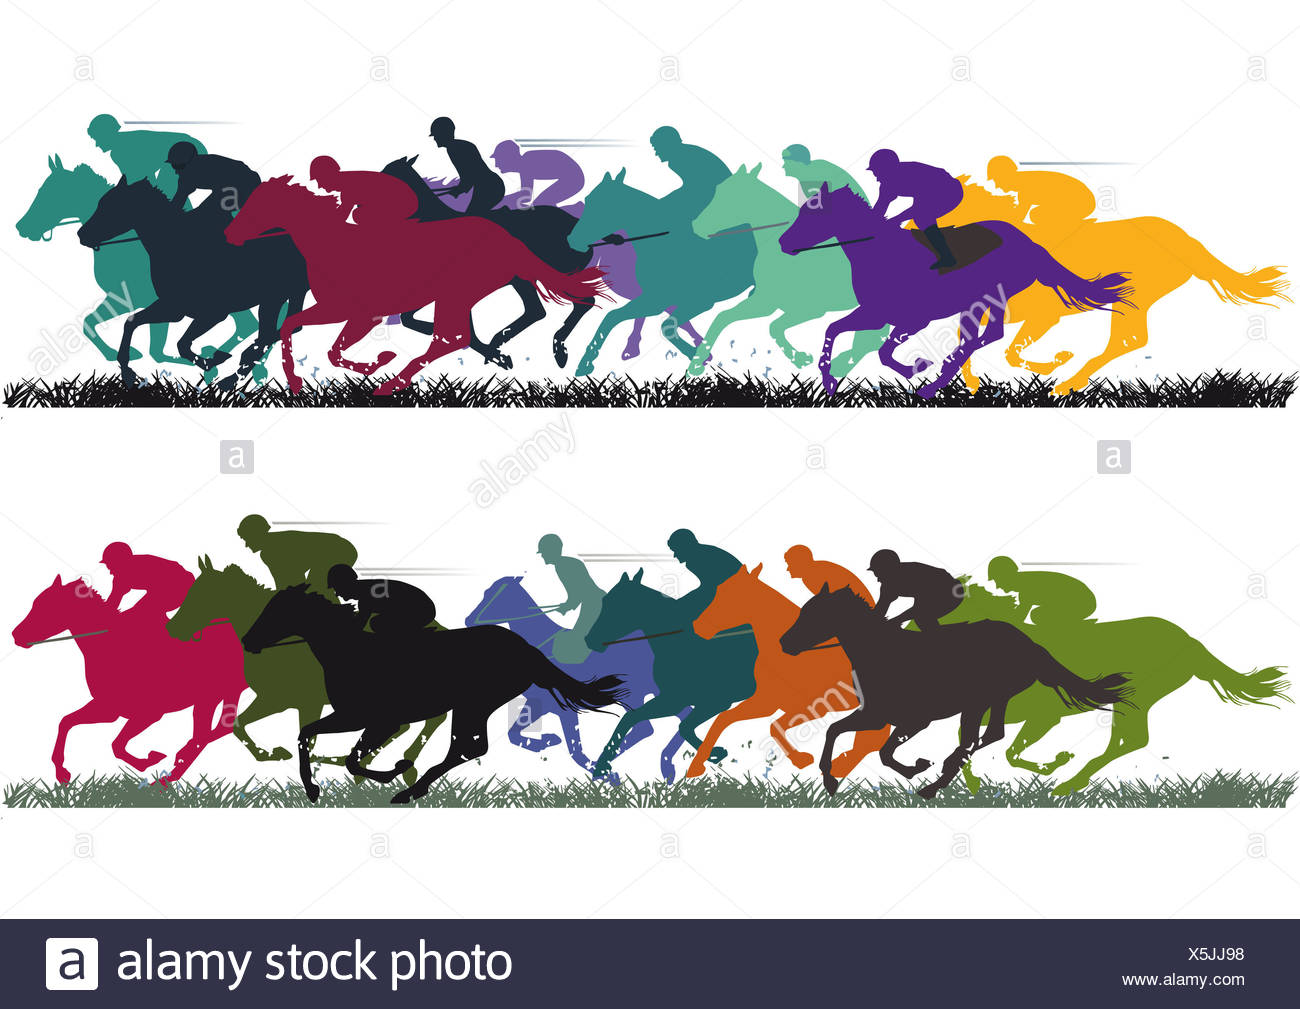 gallop races - Stock Image